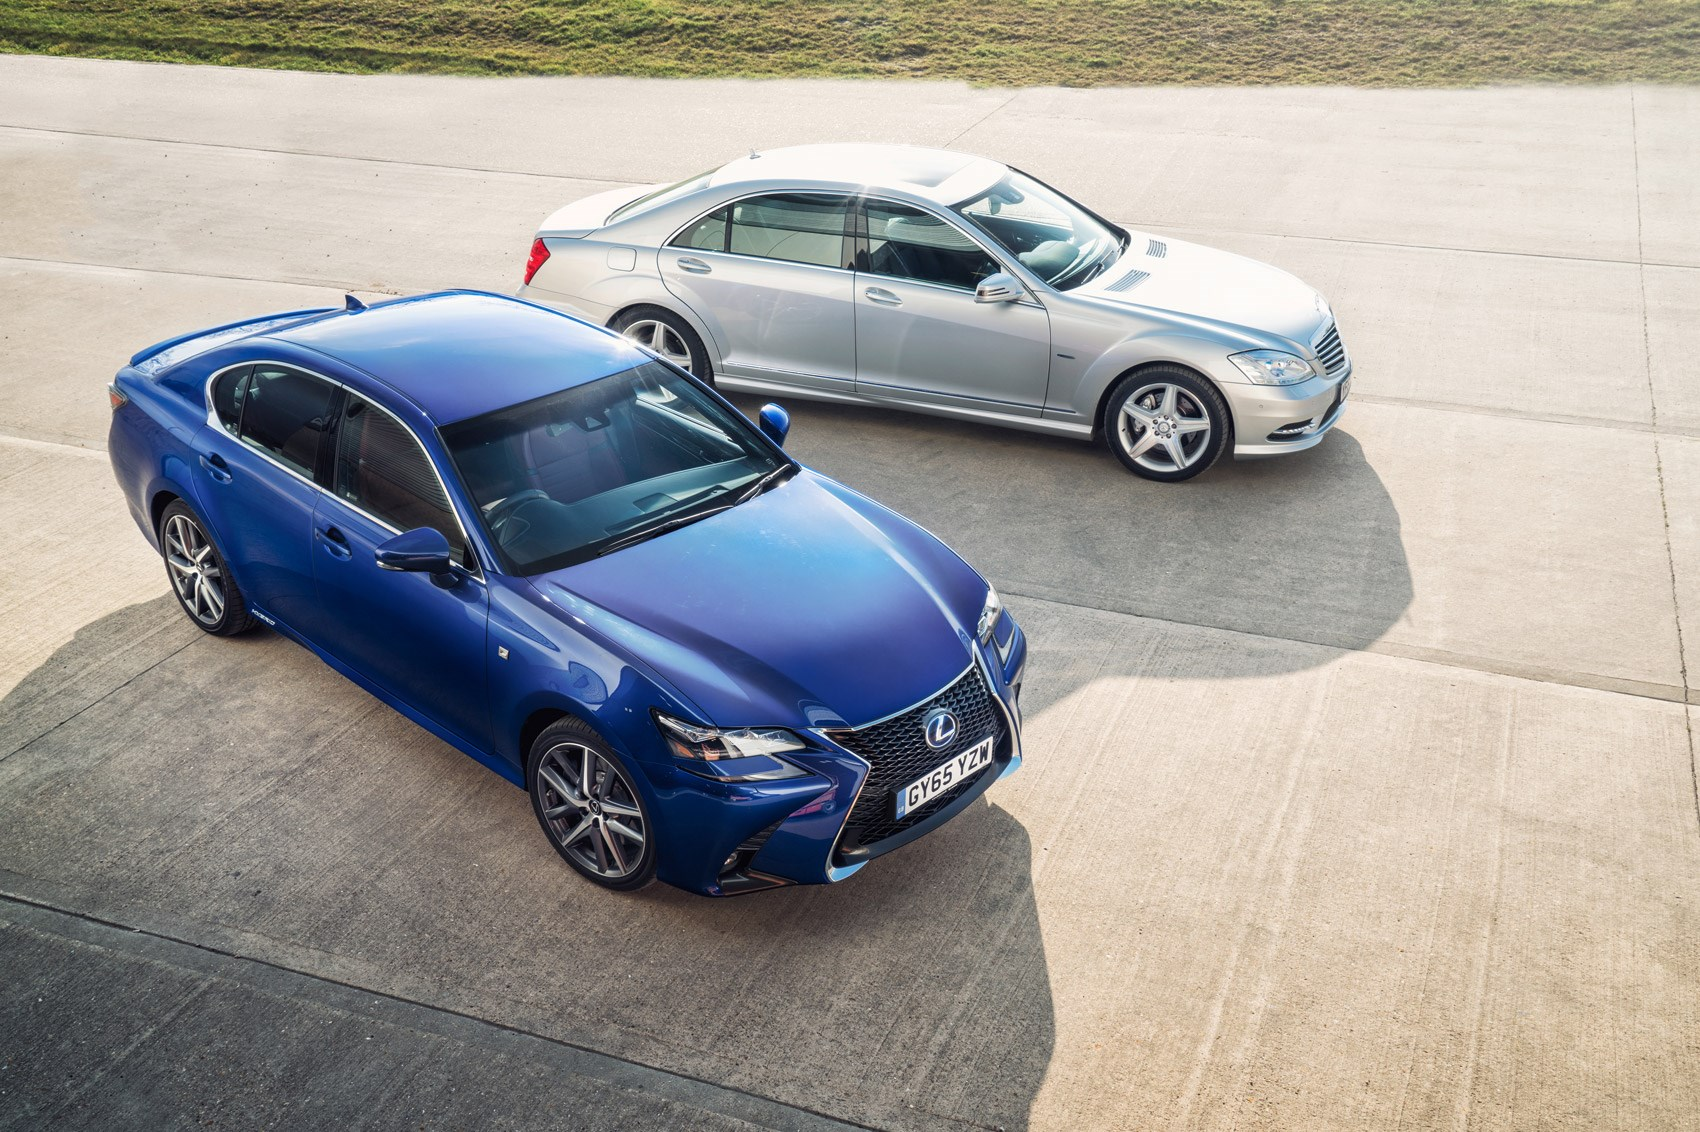 Wonderful Used Car Stars 2016: Mercedes S Class Vs Lexus GS, CAR+ June 2016